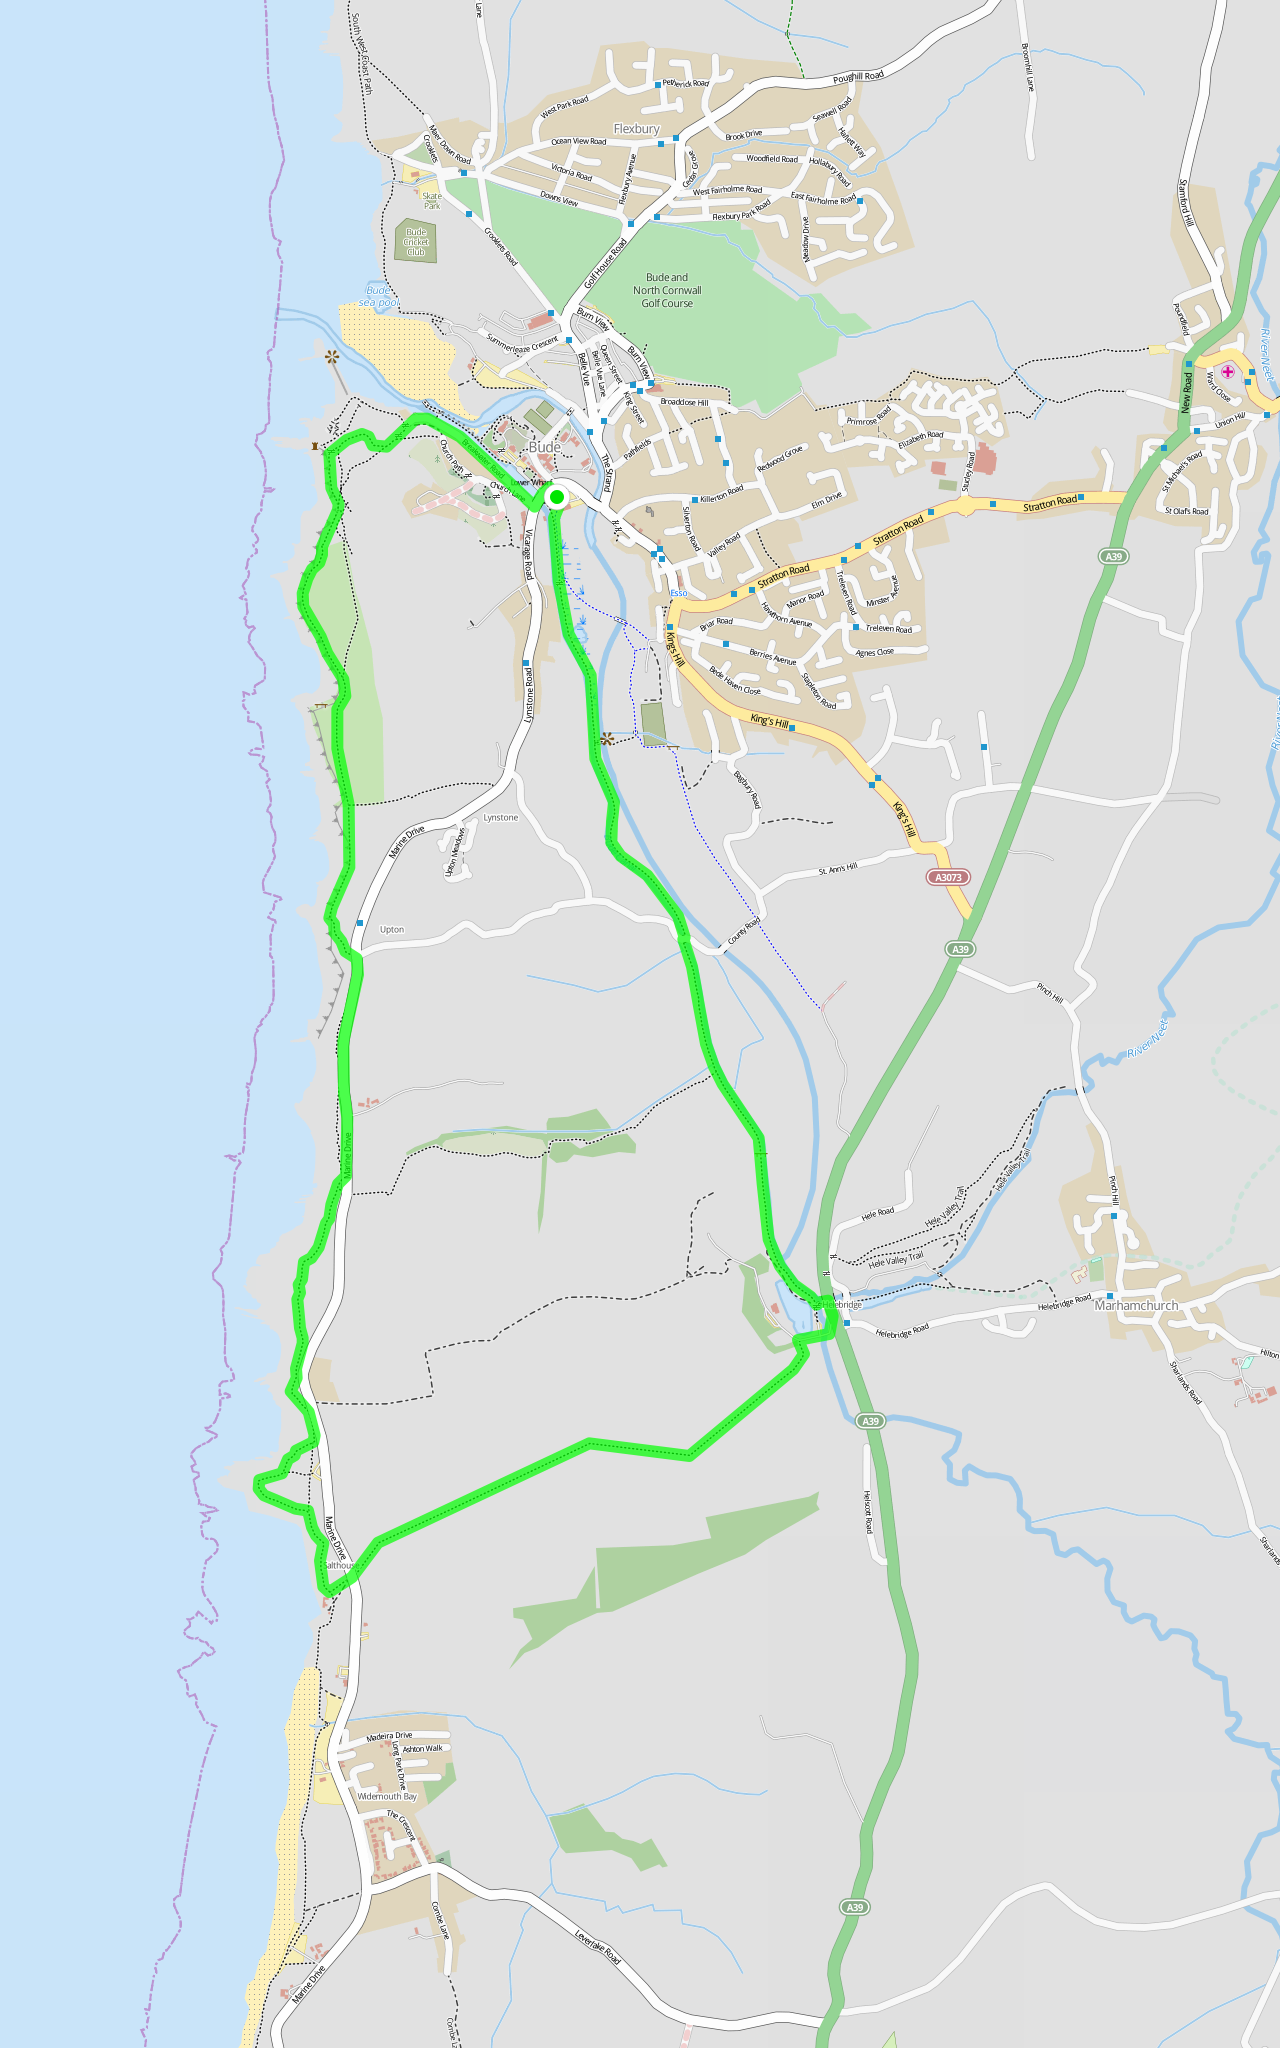 bude_osm (1).png